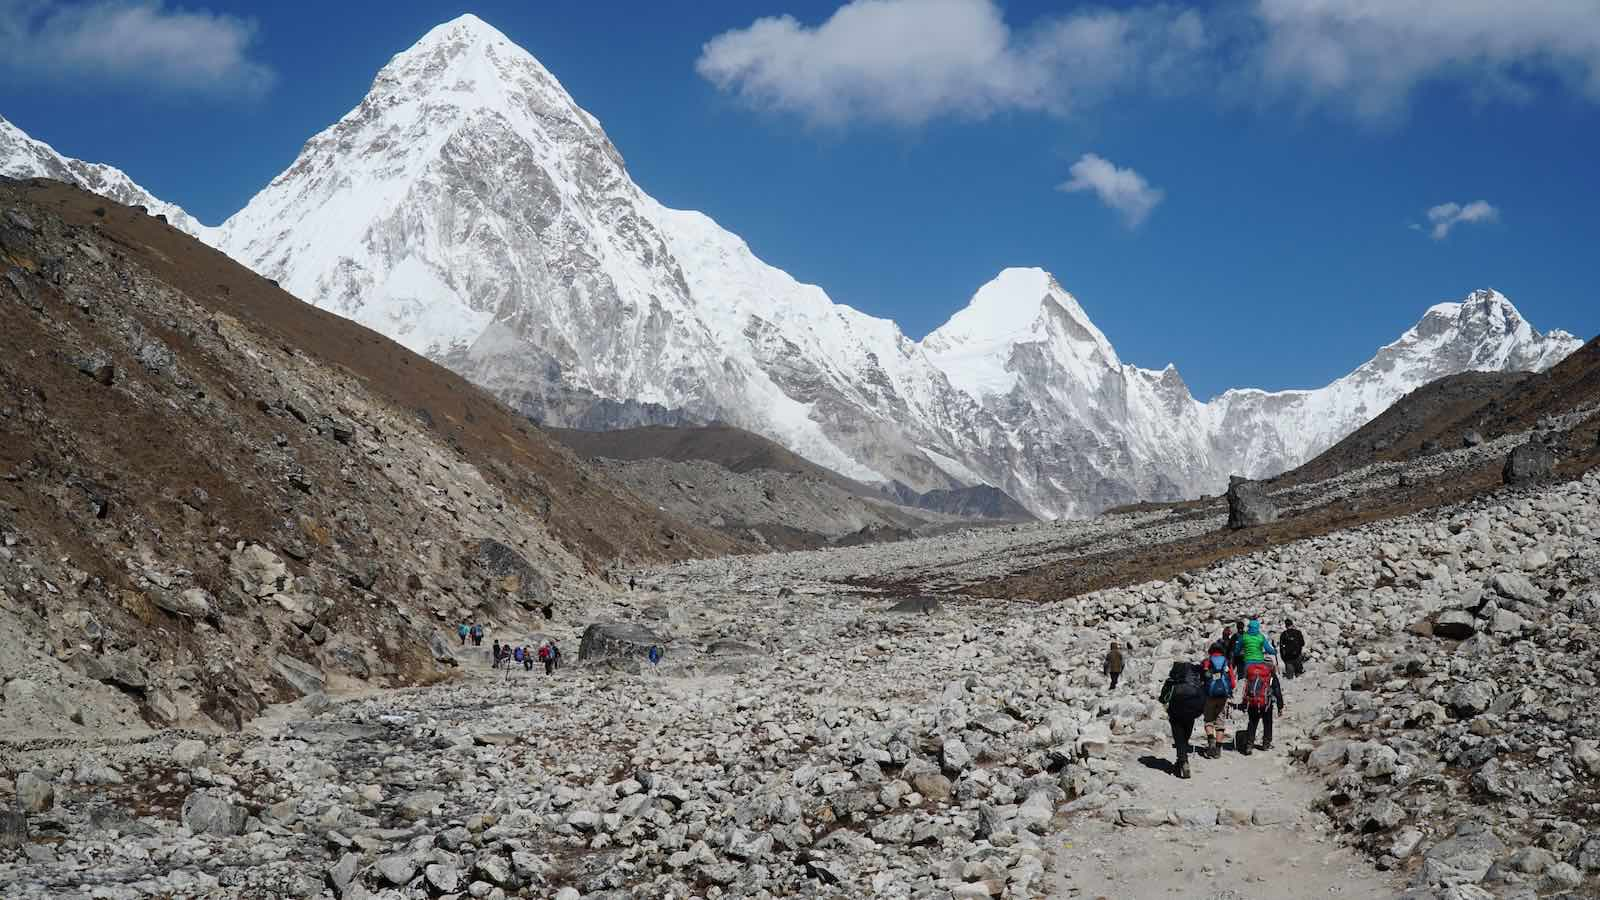 Second half was a giant uphill climb to a place called 'Memory Hill' and then mostly flat rocky terrain to Lobuche